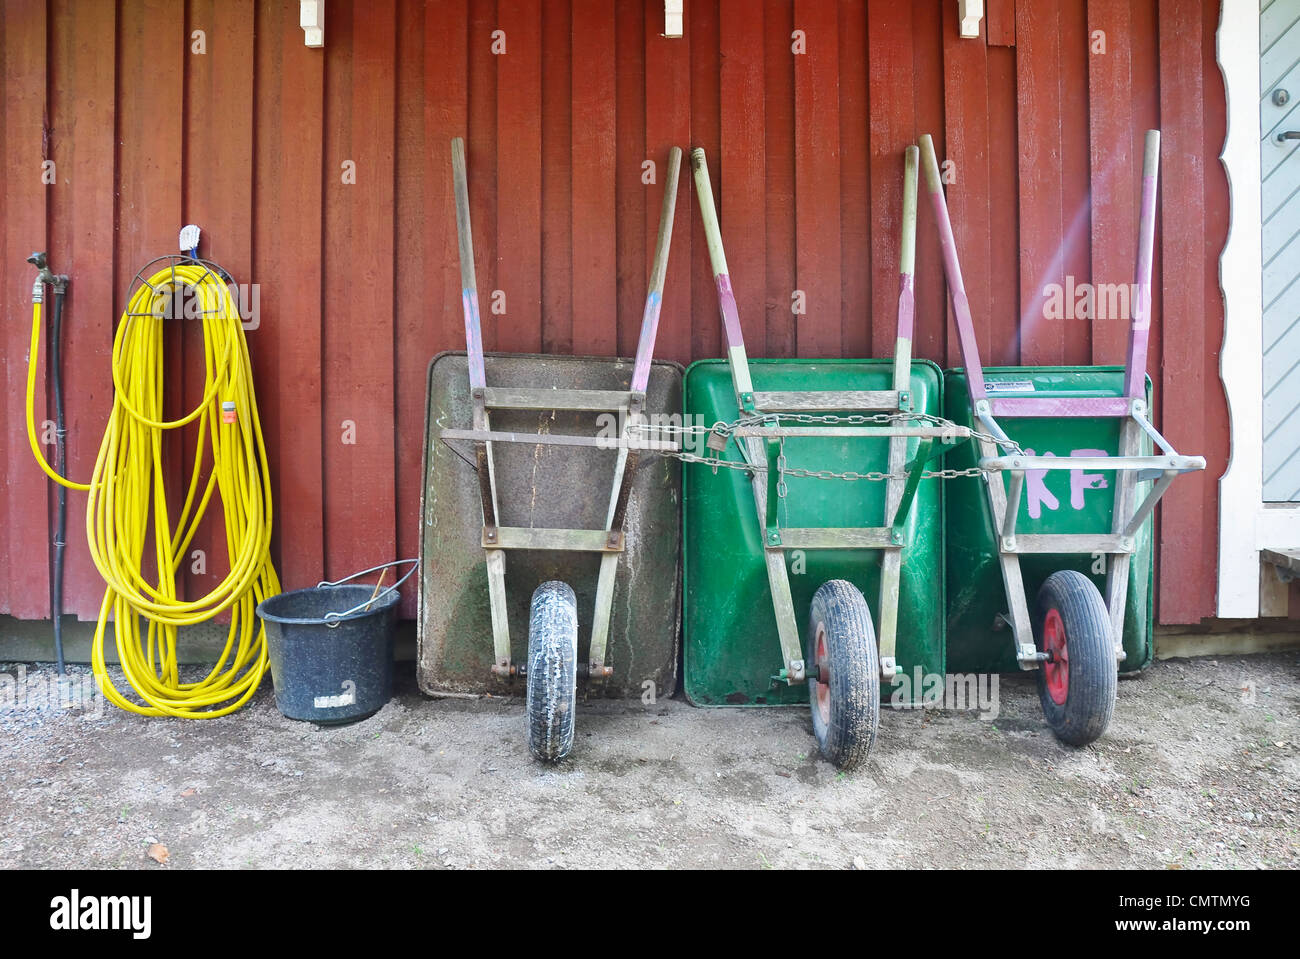 Tools side by side against wall - Stock Image